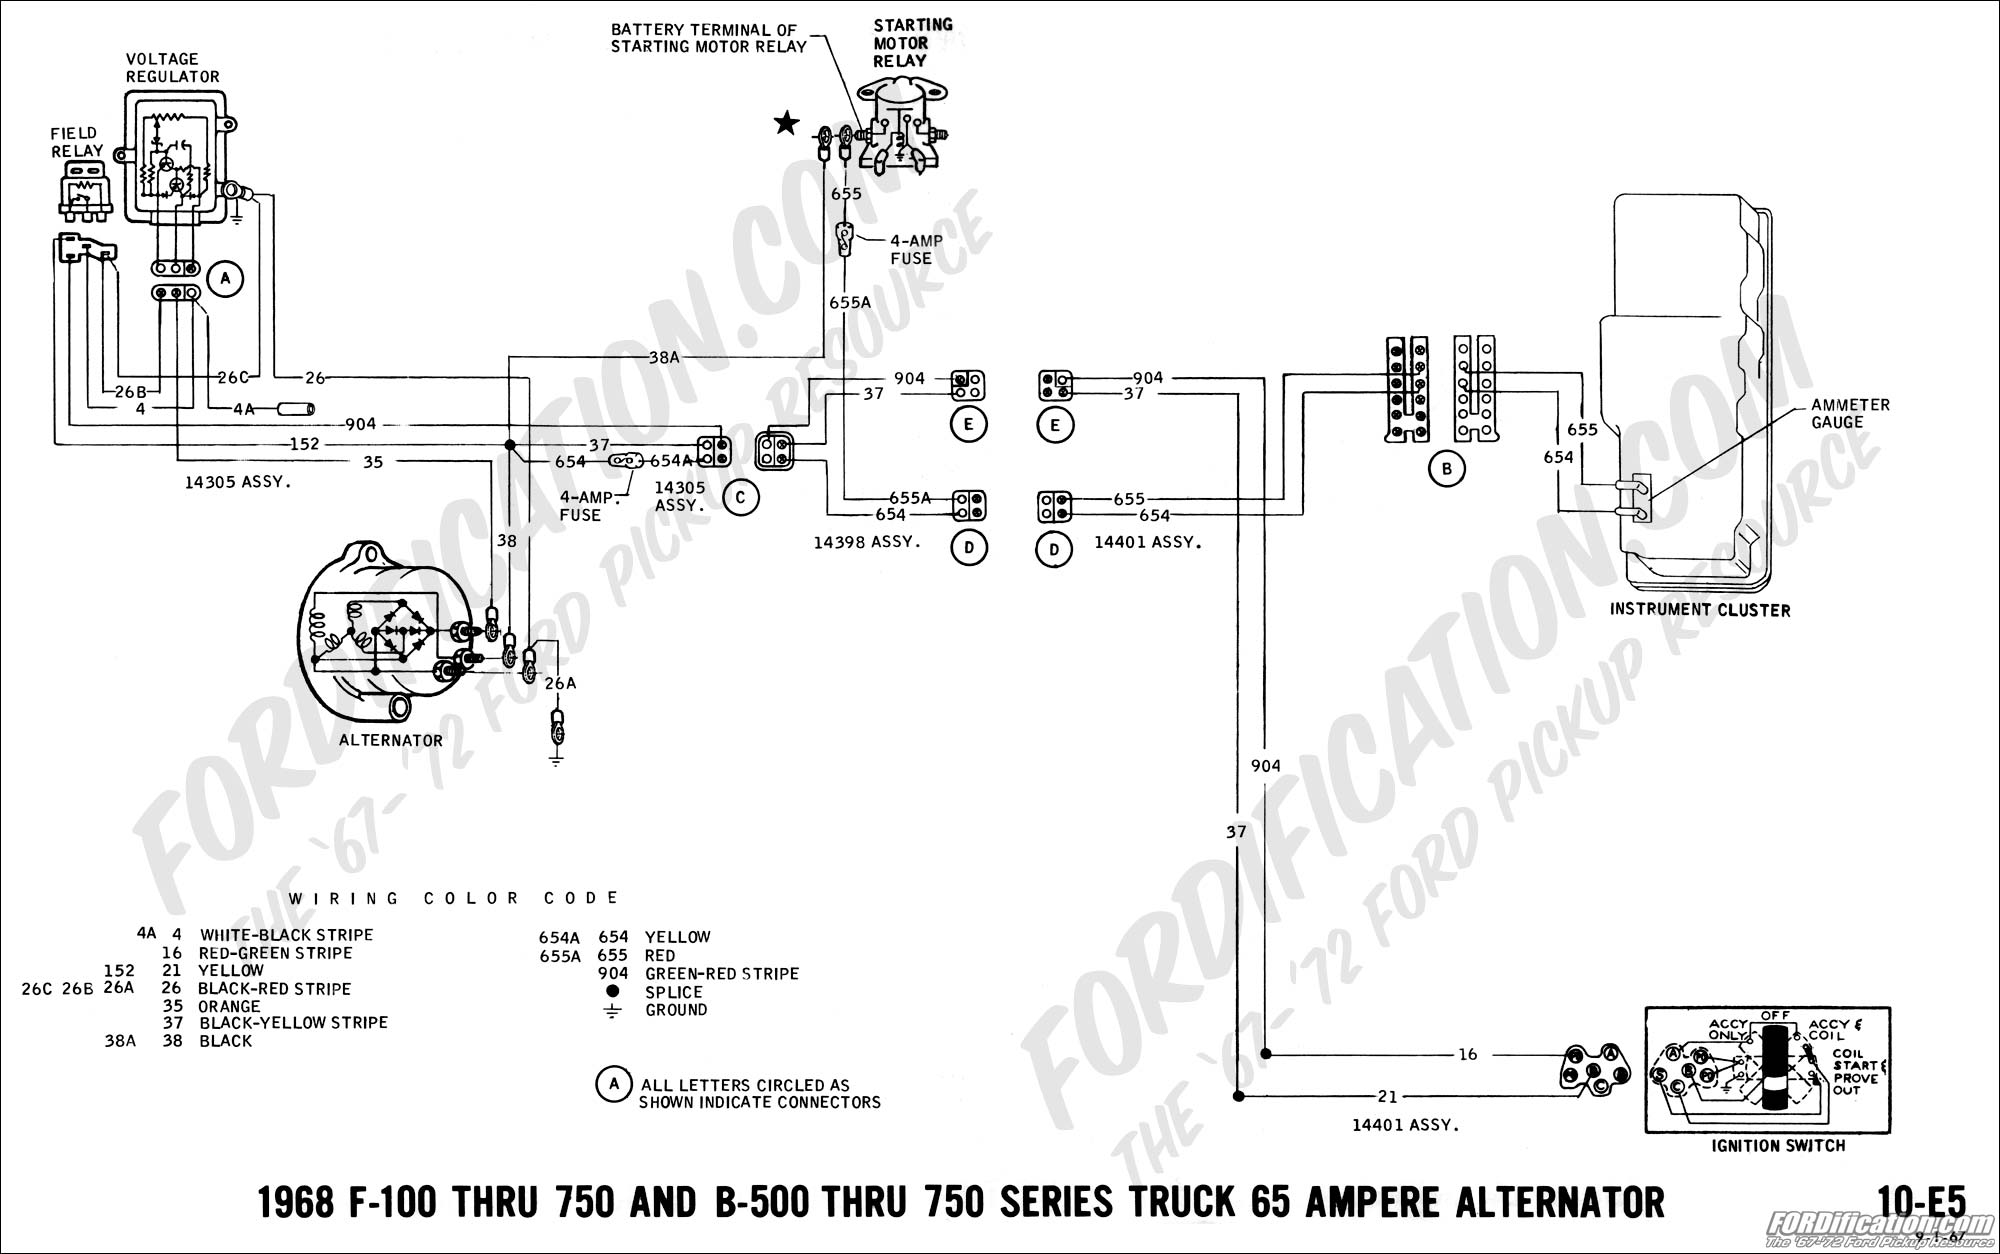 68 07 ford truck technical drawings and schematics section h wiring 1971 ford f250 wiring diagram at bakdesigns.co